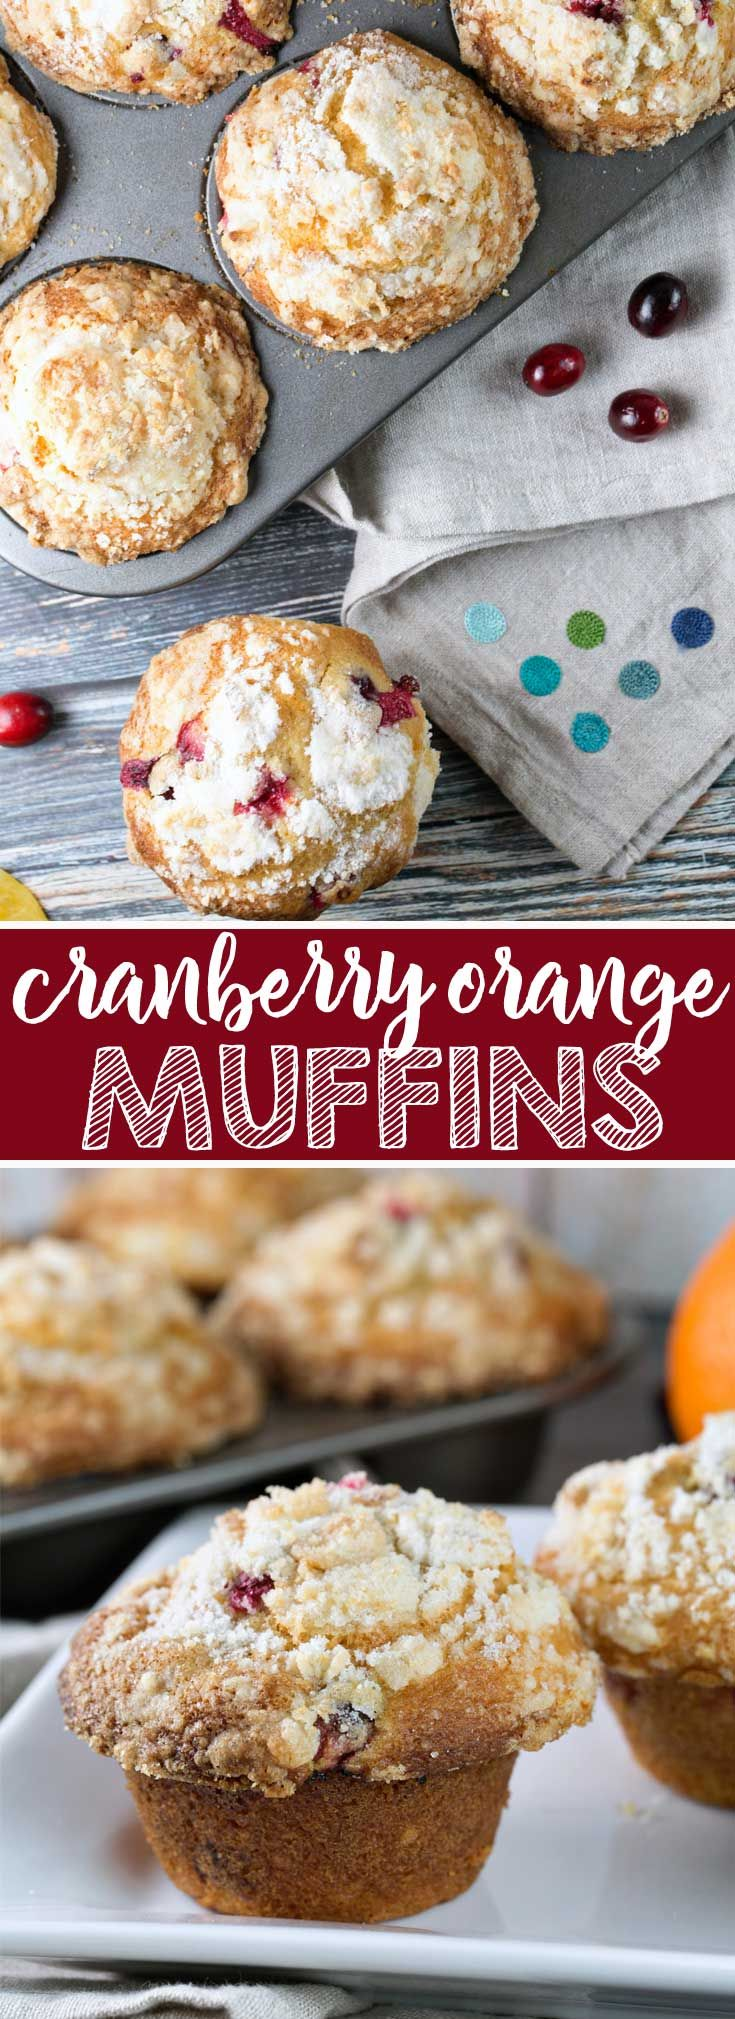 Cranberry Orange Streusel Muffins: tart cranberries and oranges pair perfectly with a sweet crumbly streusel topping in these giant, domed muffins.  The best way to start off a cold, dreary winter morning! {Bunsen Burner Bakery} #muffins #streusel #cranberryorange  via @bnsnbrnrbakery